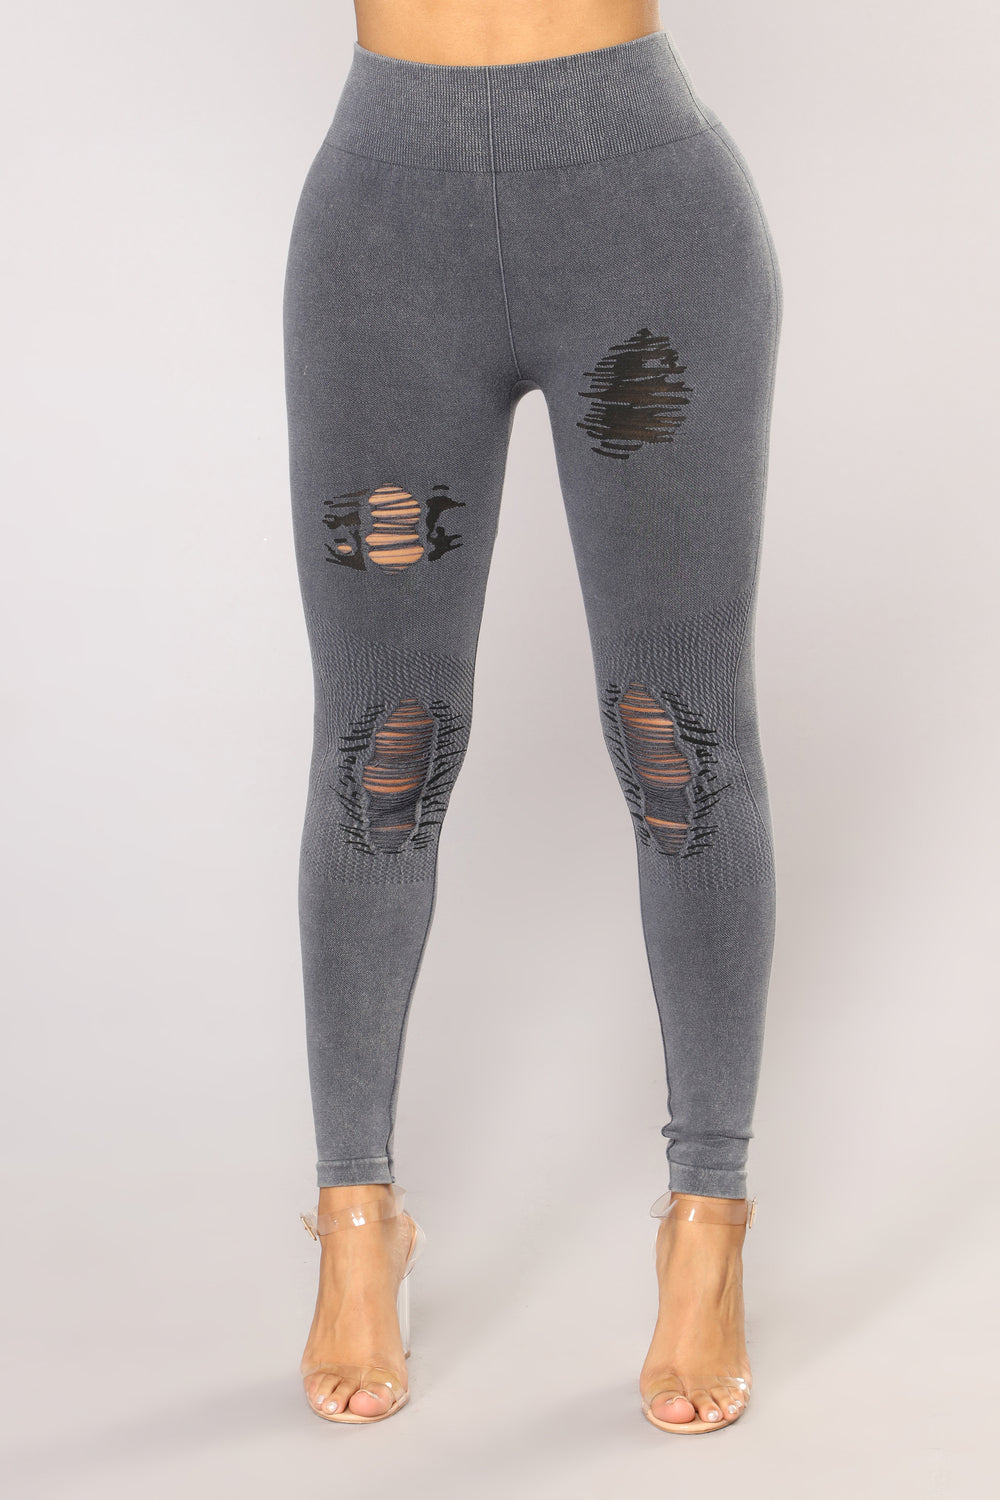 Mariah Seamless Leggings - Navy